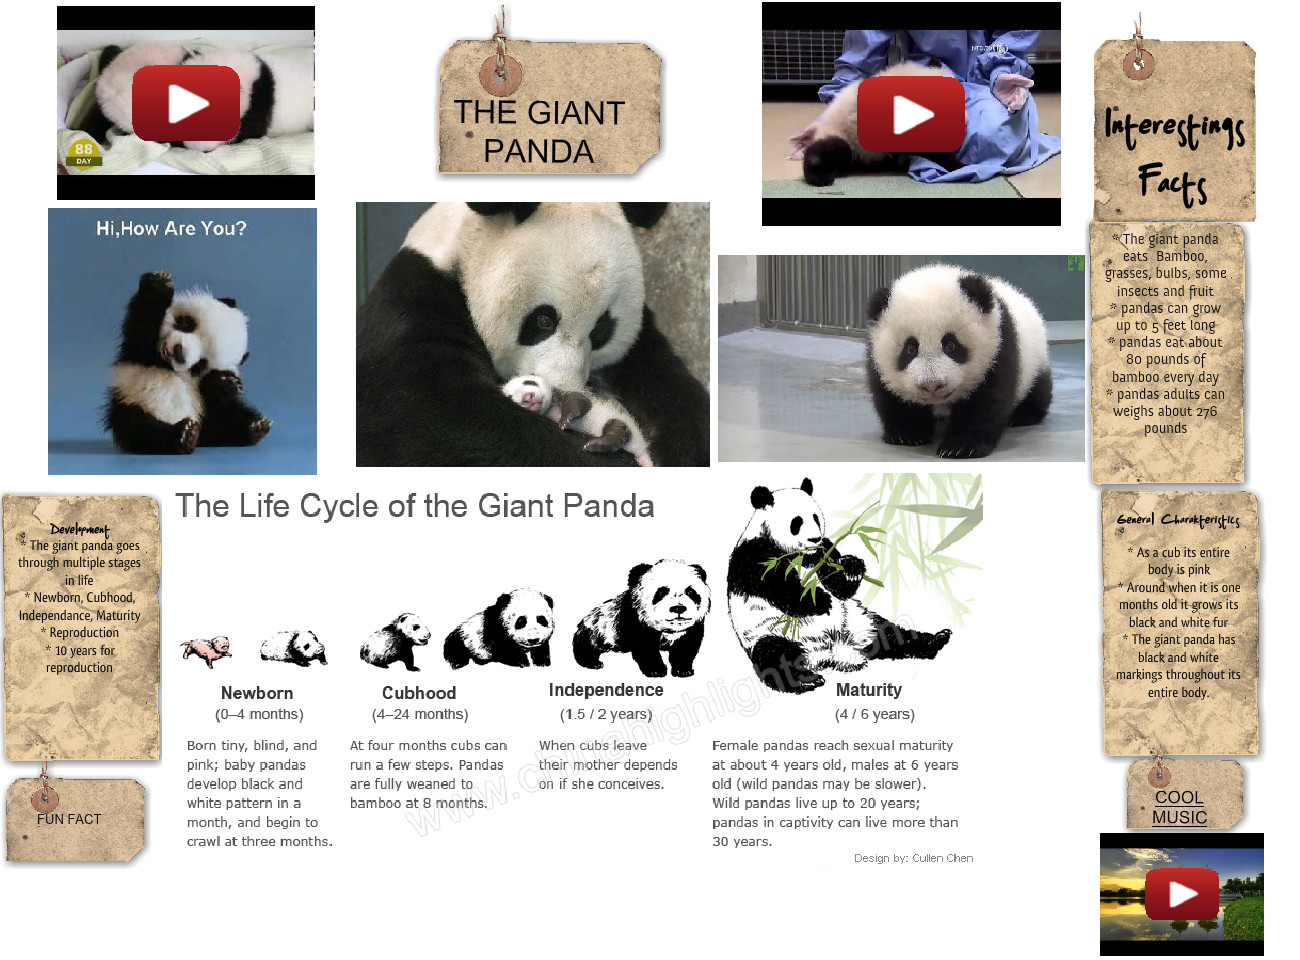 [2015] Anthony Mendez (3rd Earth Science 2015): The Giant Panda